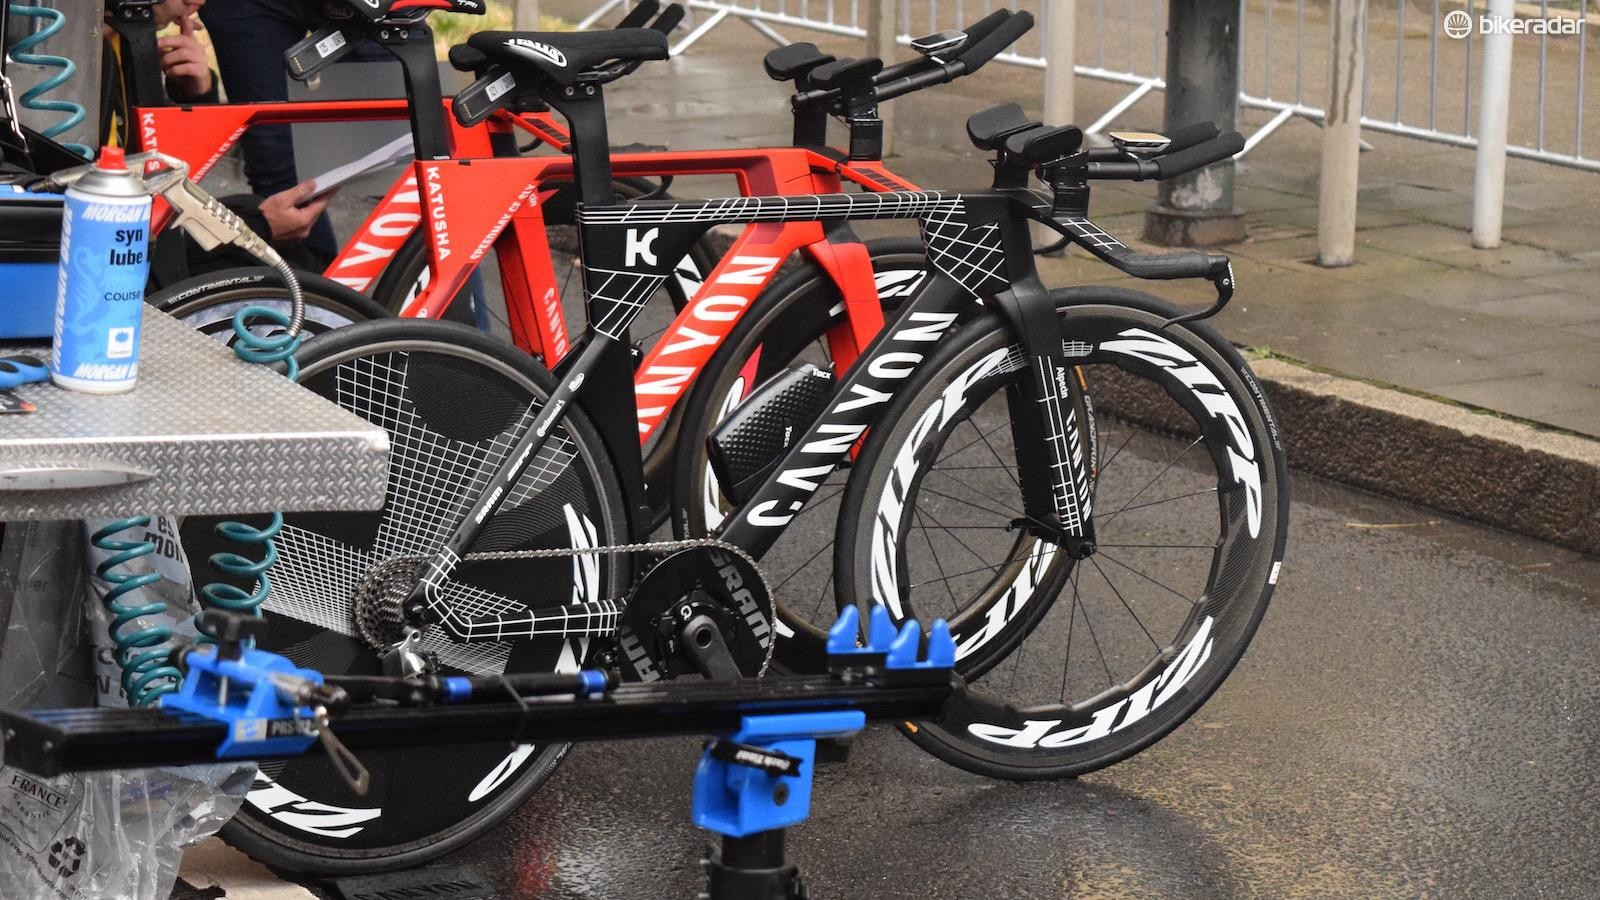 Tony Martin had a special edition Kraftwerk Canyon Speedmax CF SLX for the Dusseldorf Grand Depart